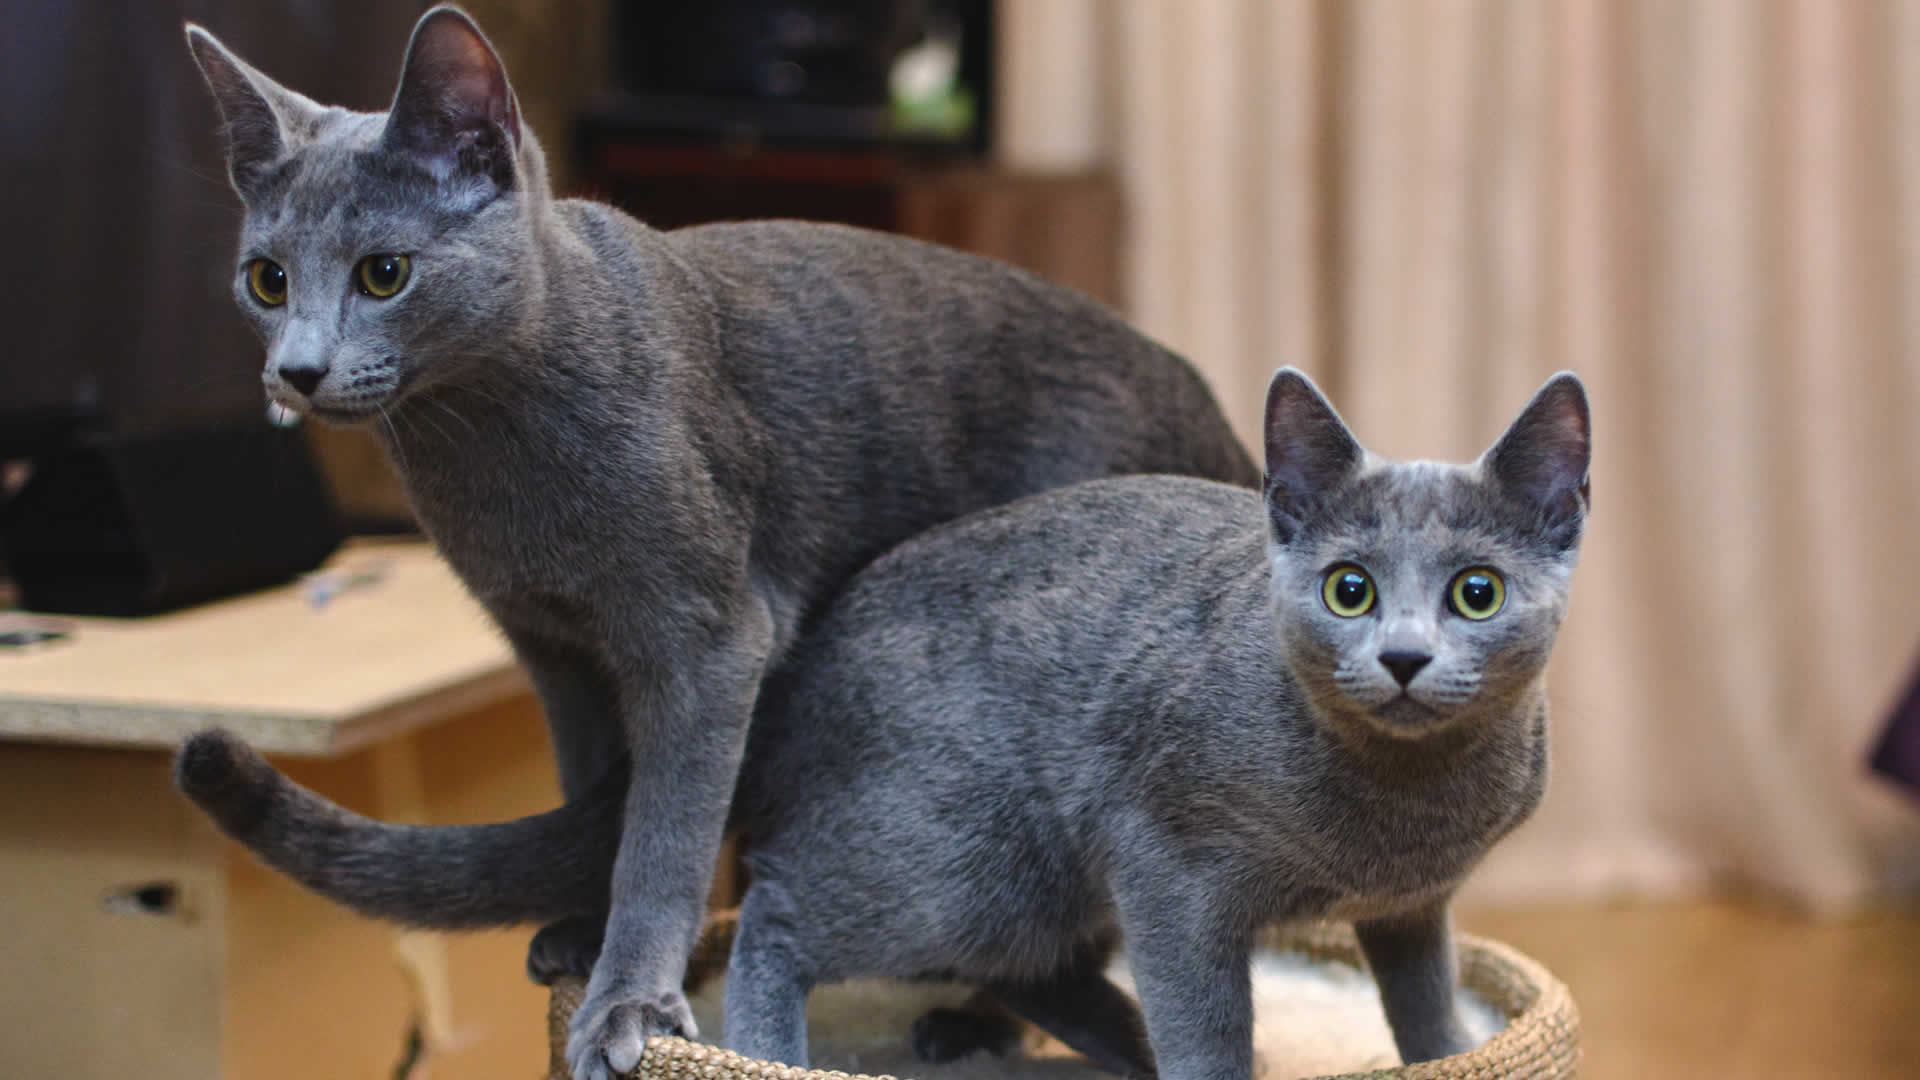 Russian Blue is one of the cat breeds with the curly tail